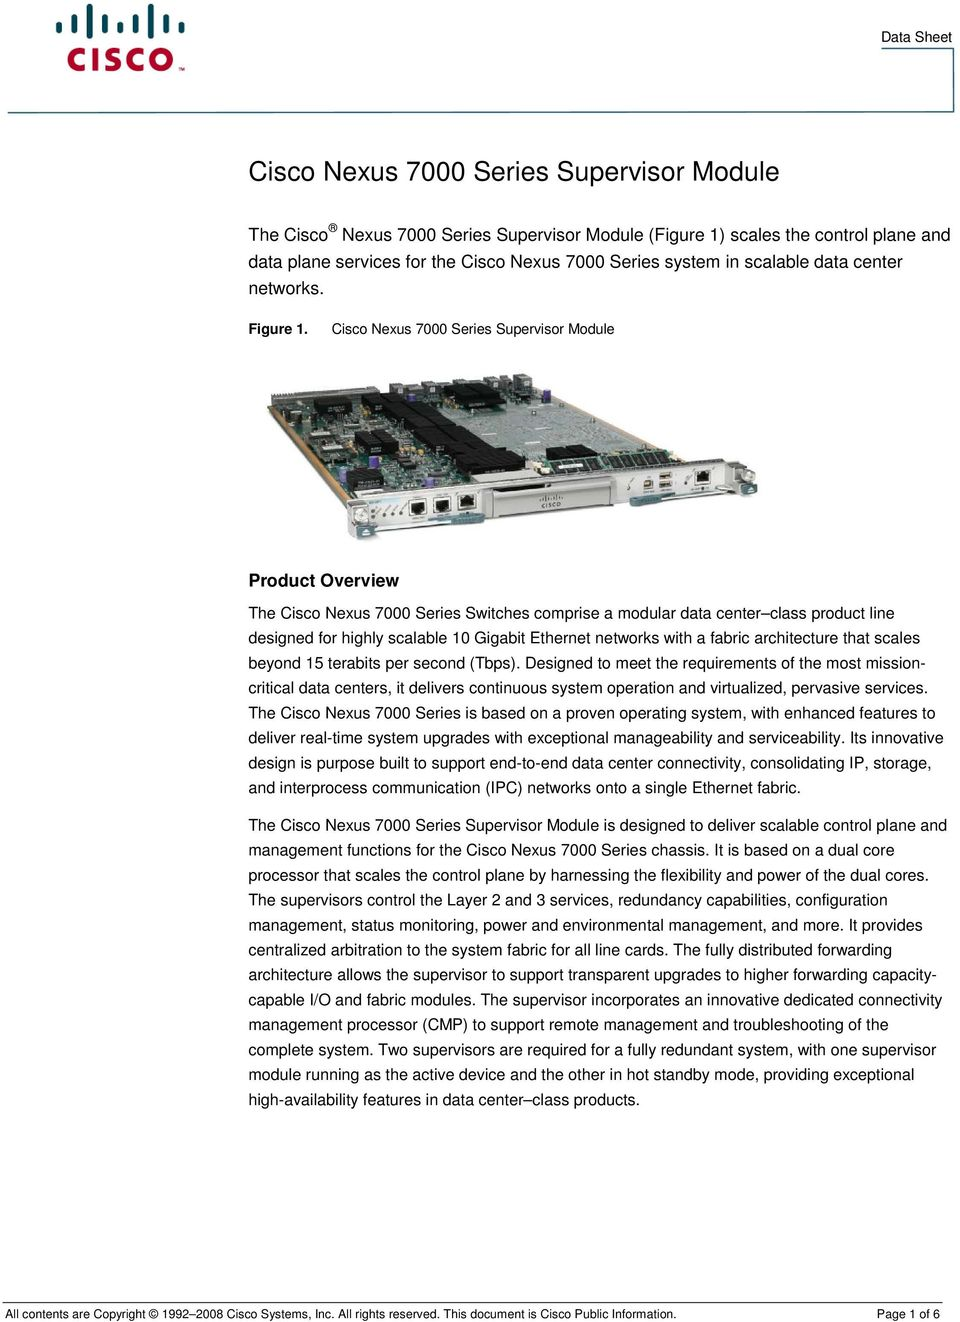 Cisco Nexus 7000 Series Supervisor Module Product Overview The Cisco Nexus 7000 Series Switches comprise a modular data center class product line designed for highly scalable 10 Gigabit Ethernet